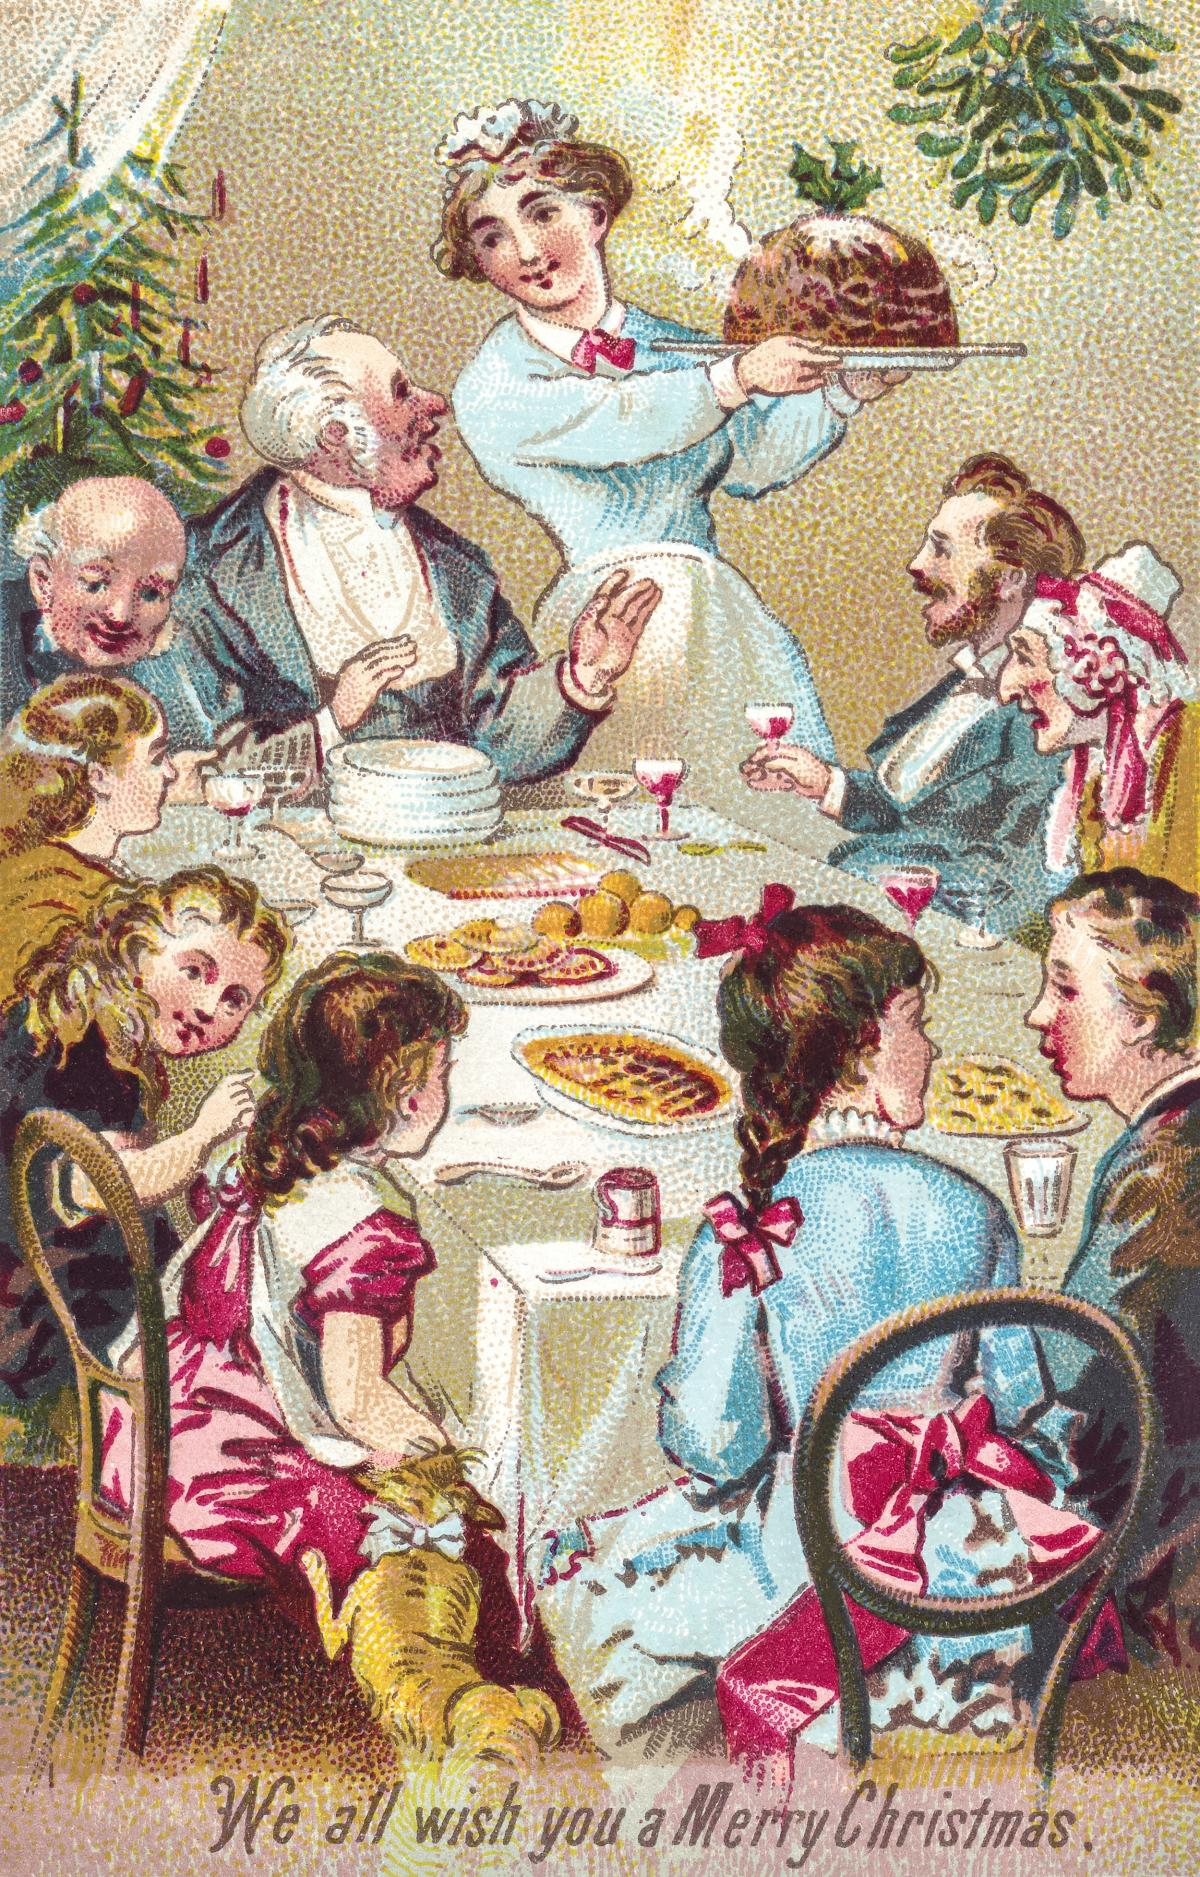 We all wish you a merry Christmas (ca.1800–1900) from Rare Book Division. Original from The New York Public Library.